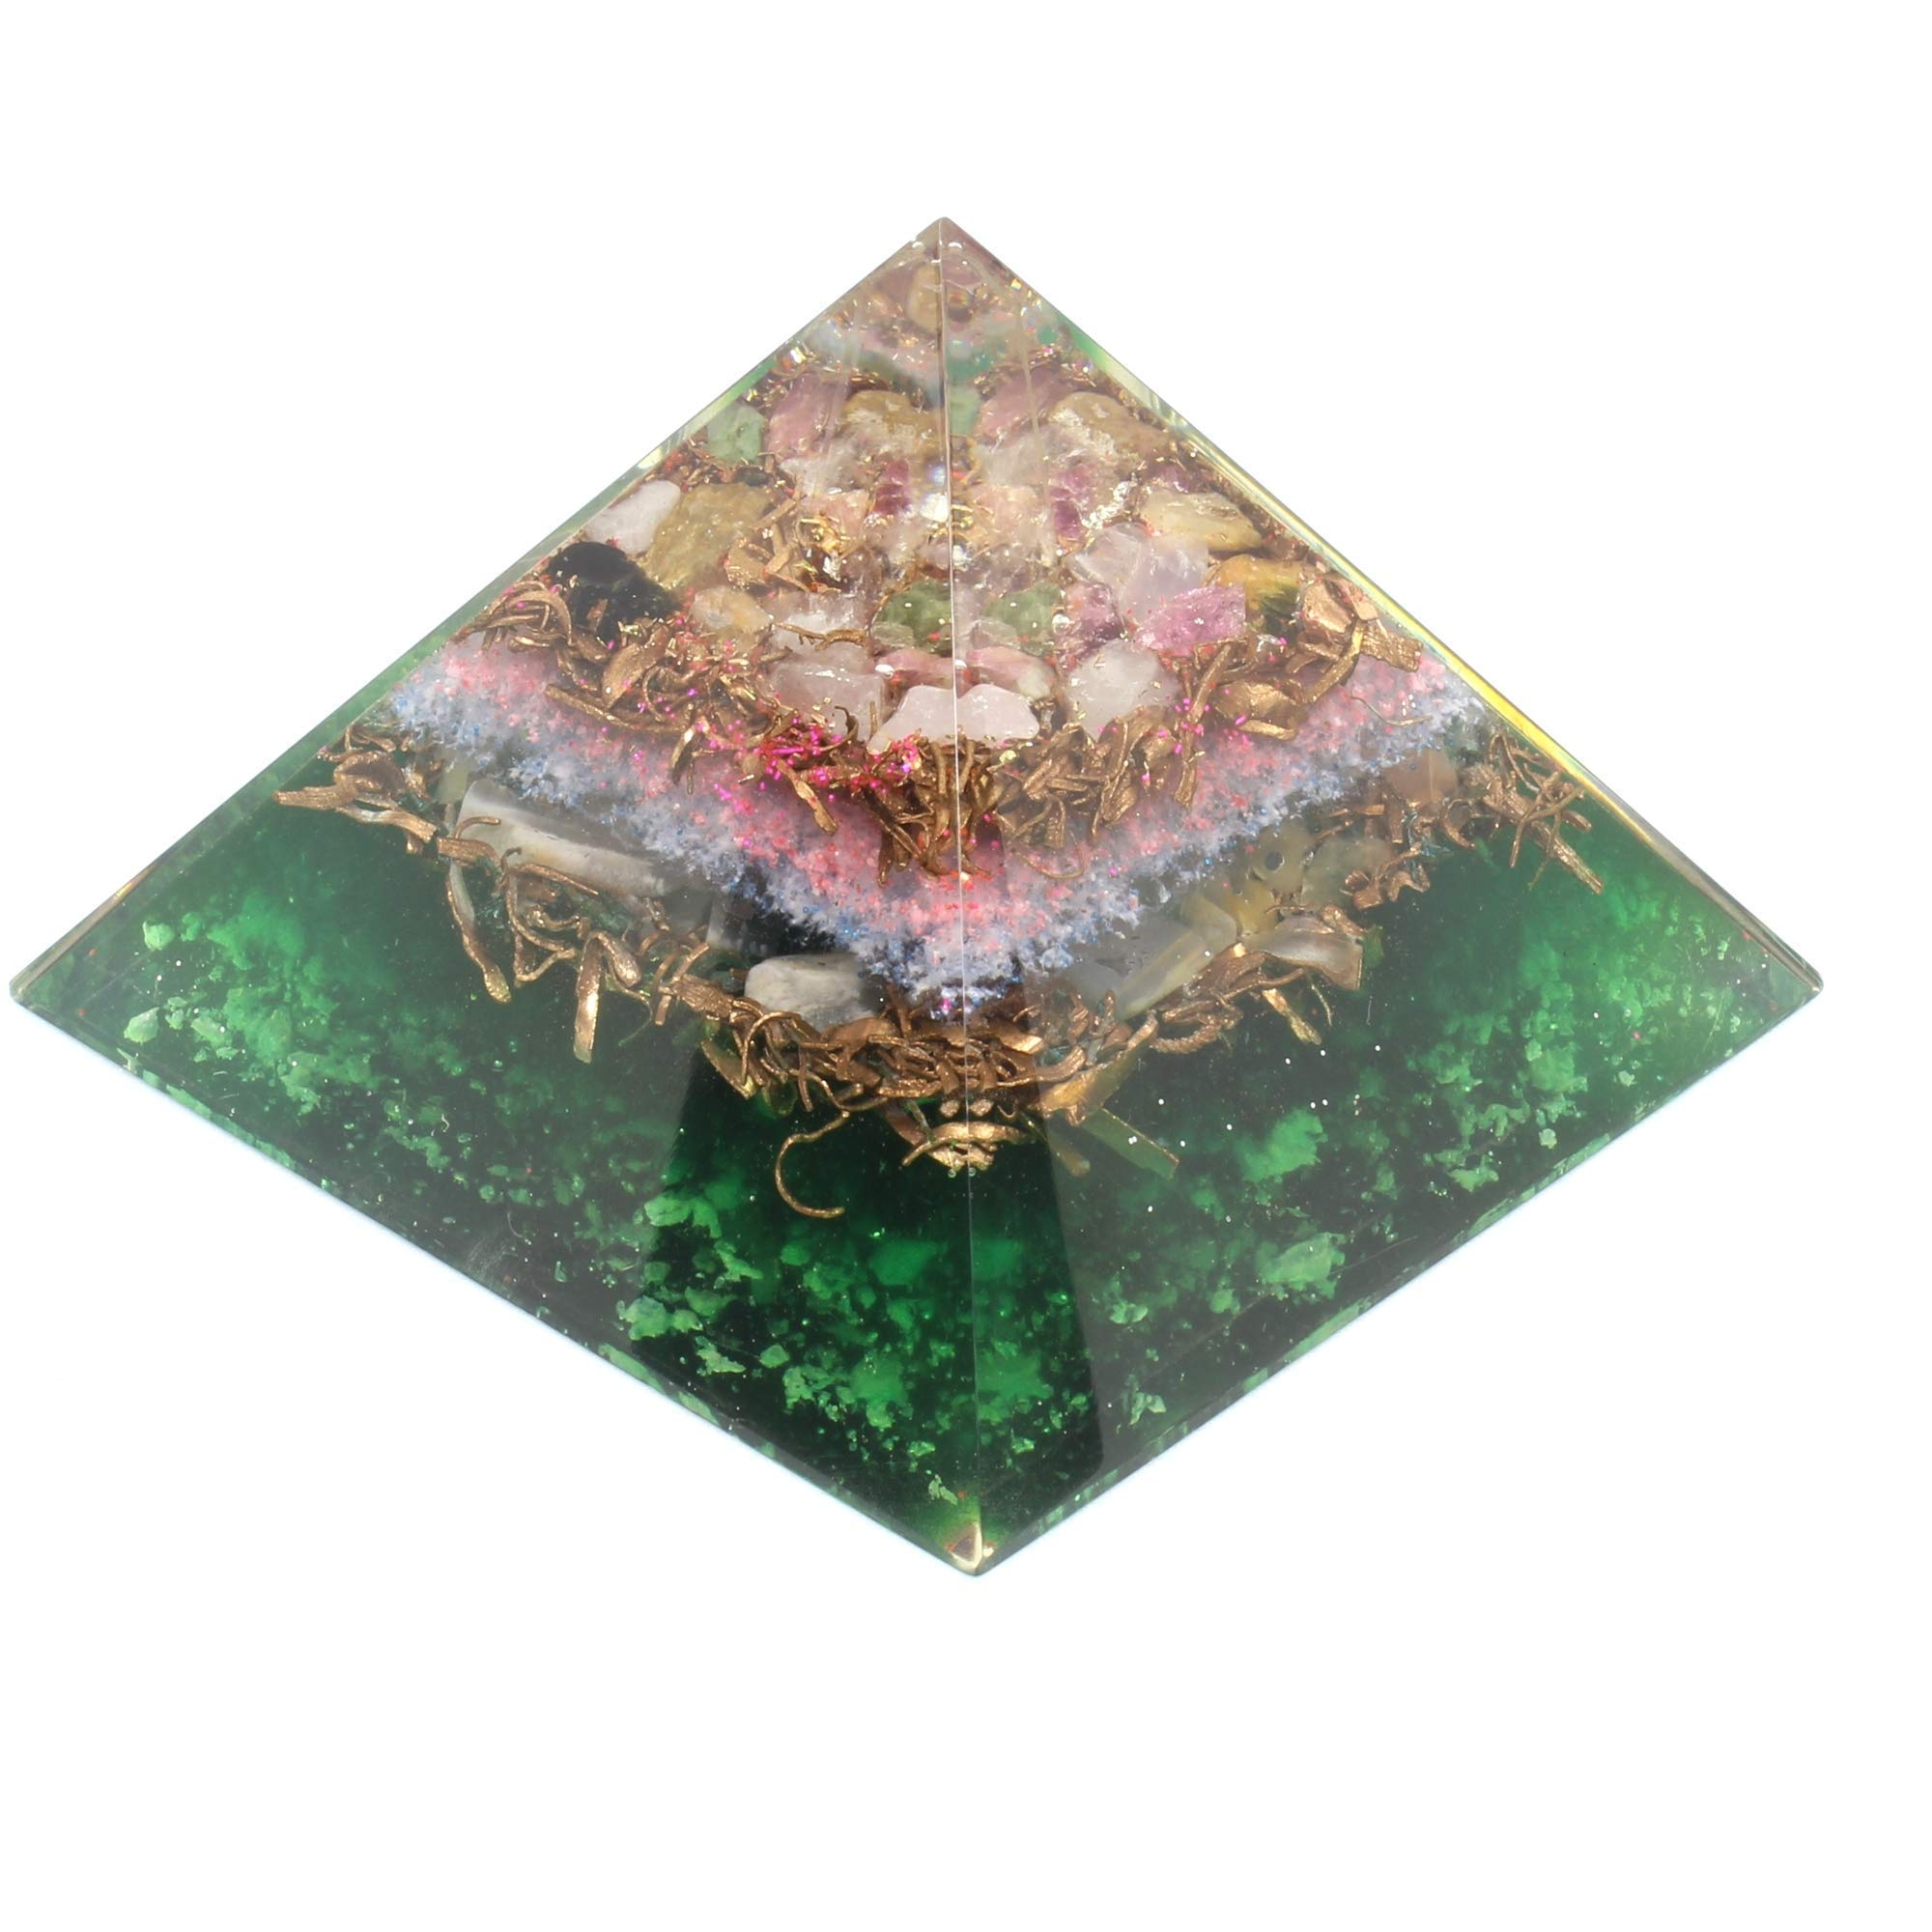 Orgone pyramid with orgone energy- healing crystal based Multi tourmaline Orgonite Pyramid for Positive Energy-EMF Protection by Orgonite Crystal